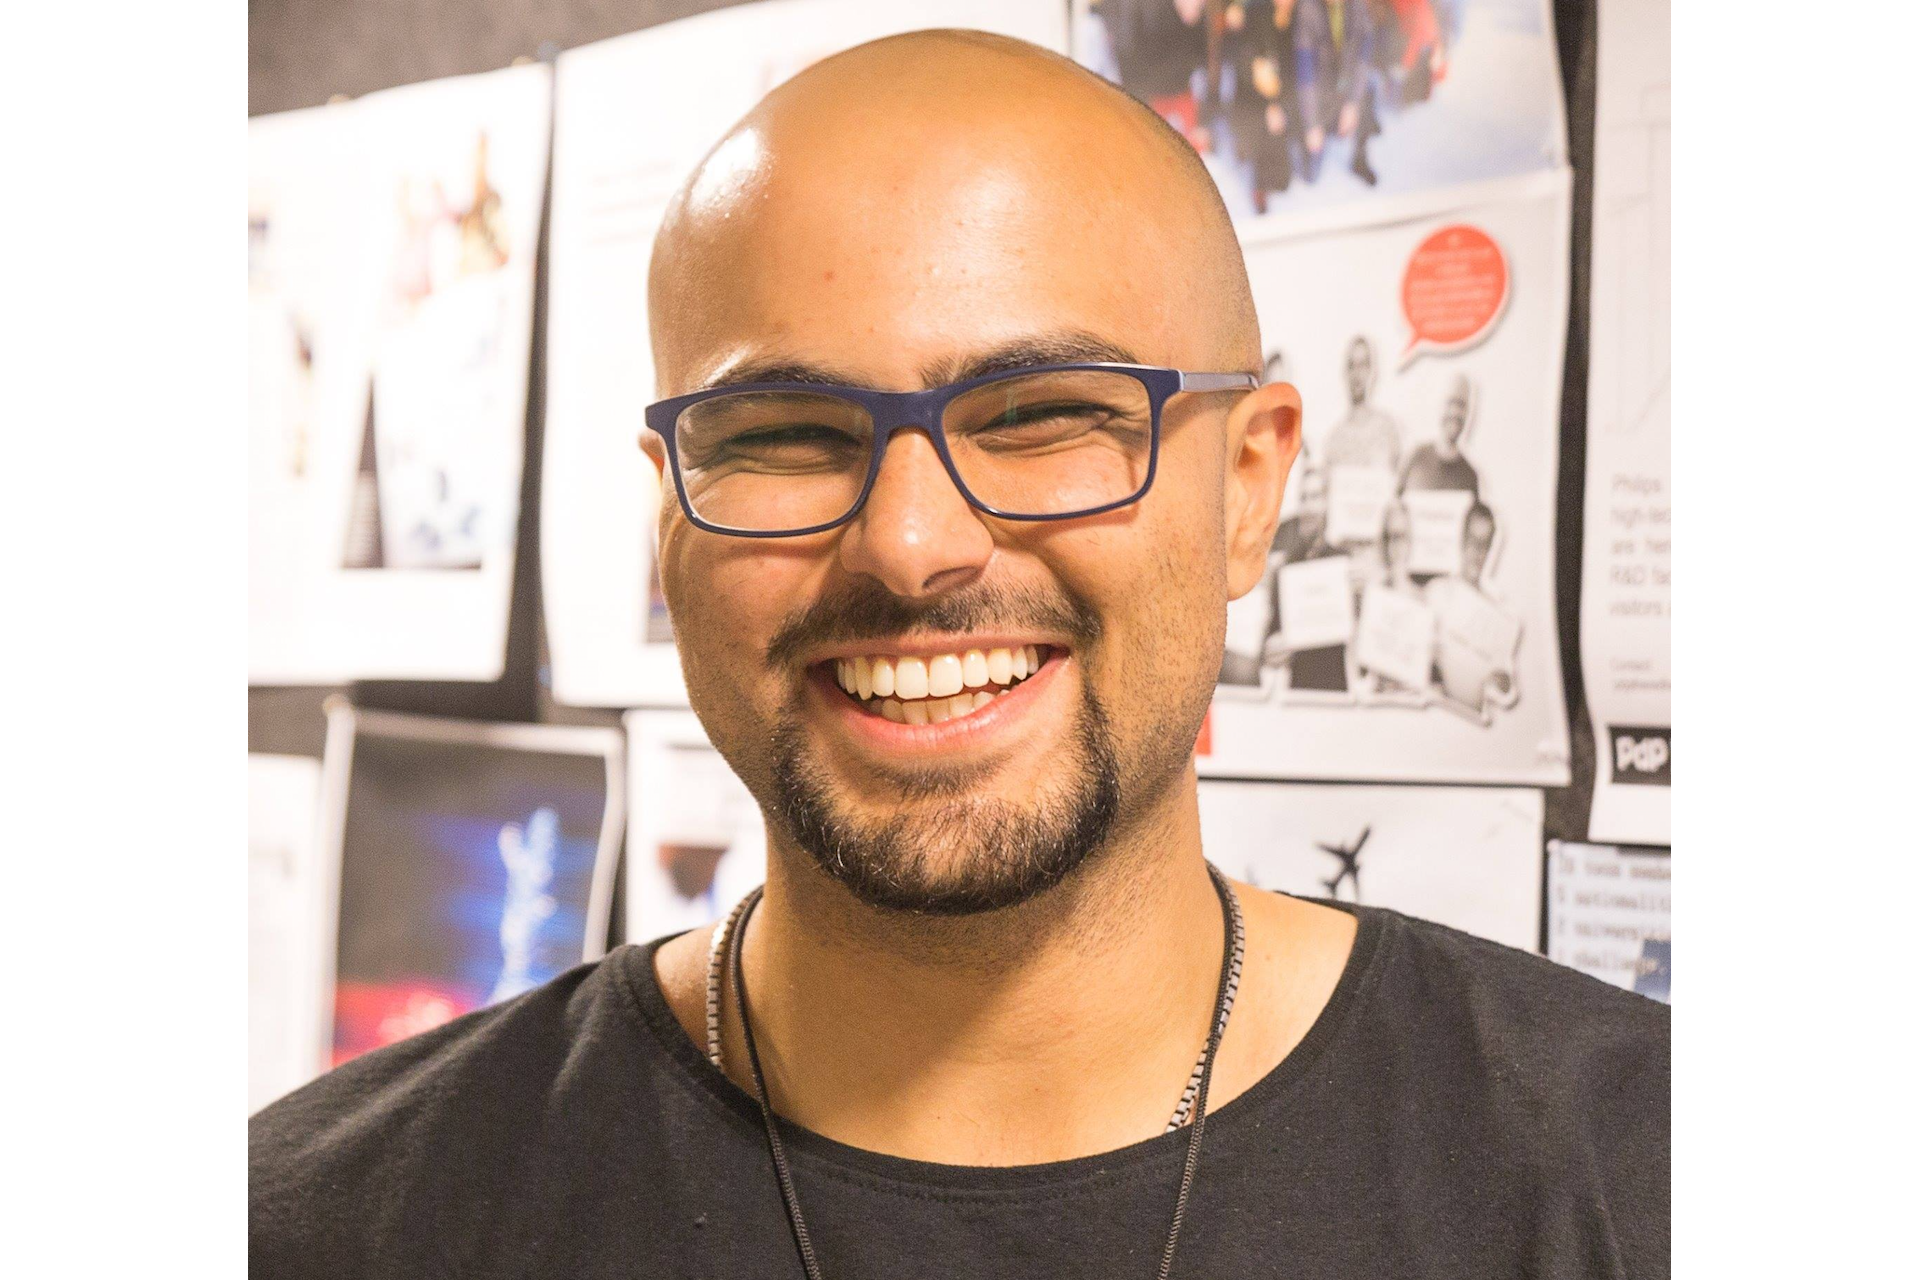 Picture of Bijan, Product Development Engineer at Surgify